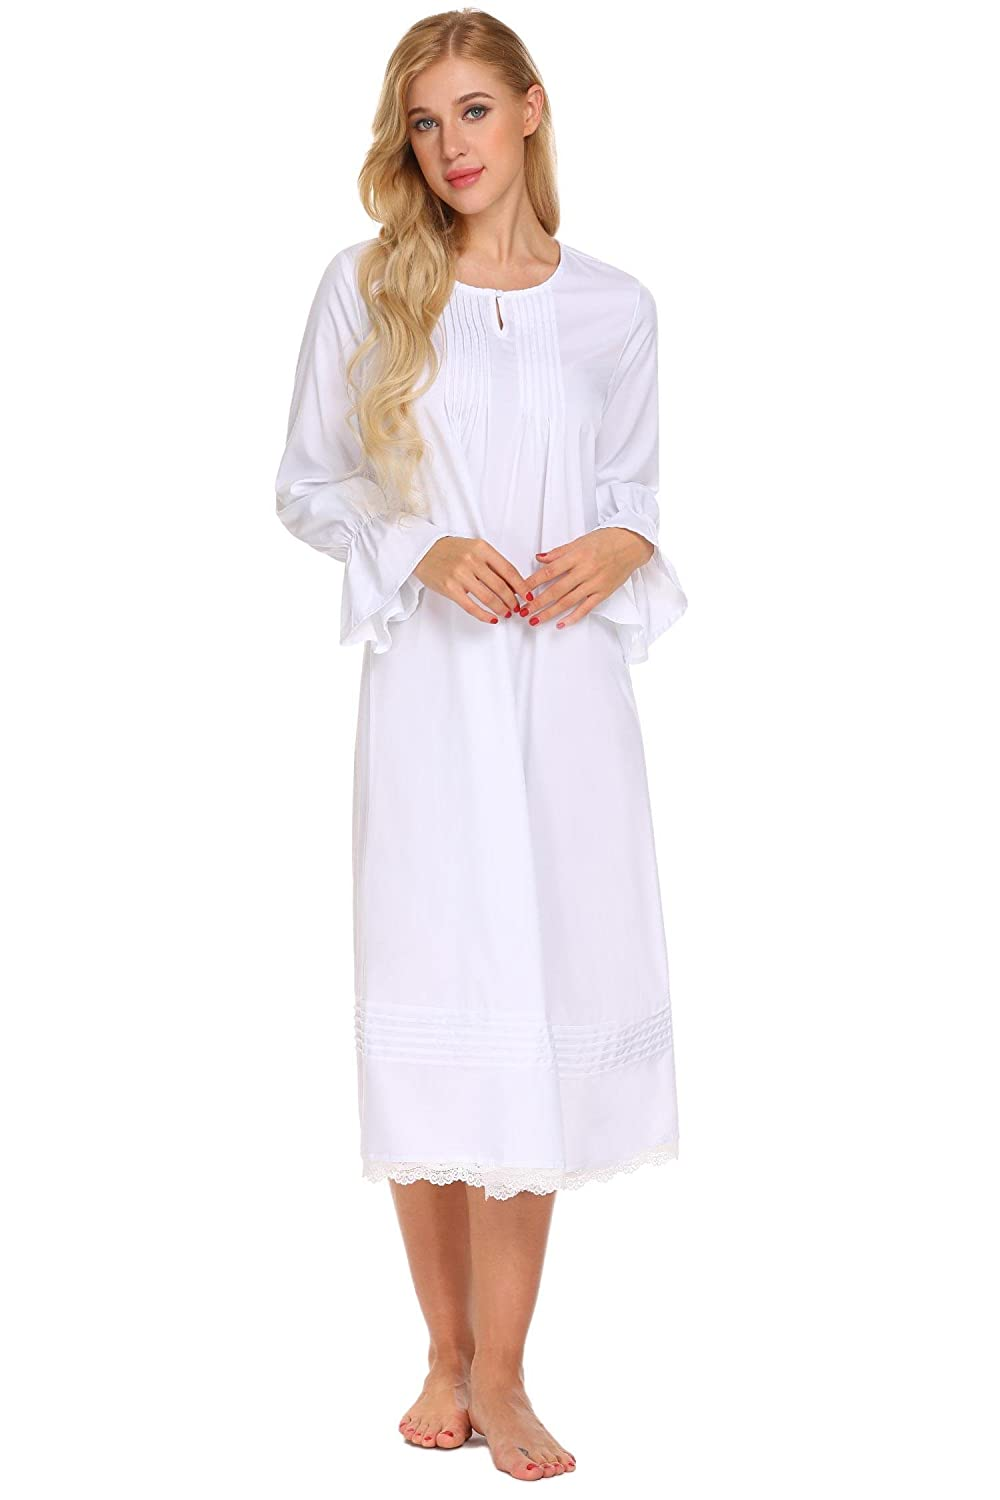 Ekouaer Women Ladies Long Sleeve Nightdress Victorian Vintage Nightgown  Nightwear Midi Dress With Lace  Amazon.co.uk  Clothing 818b7bb74